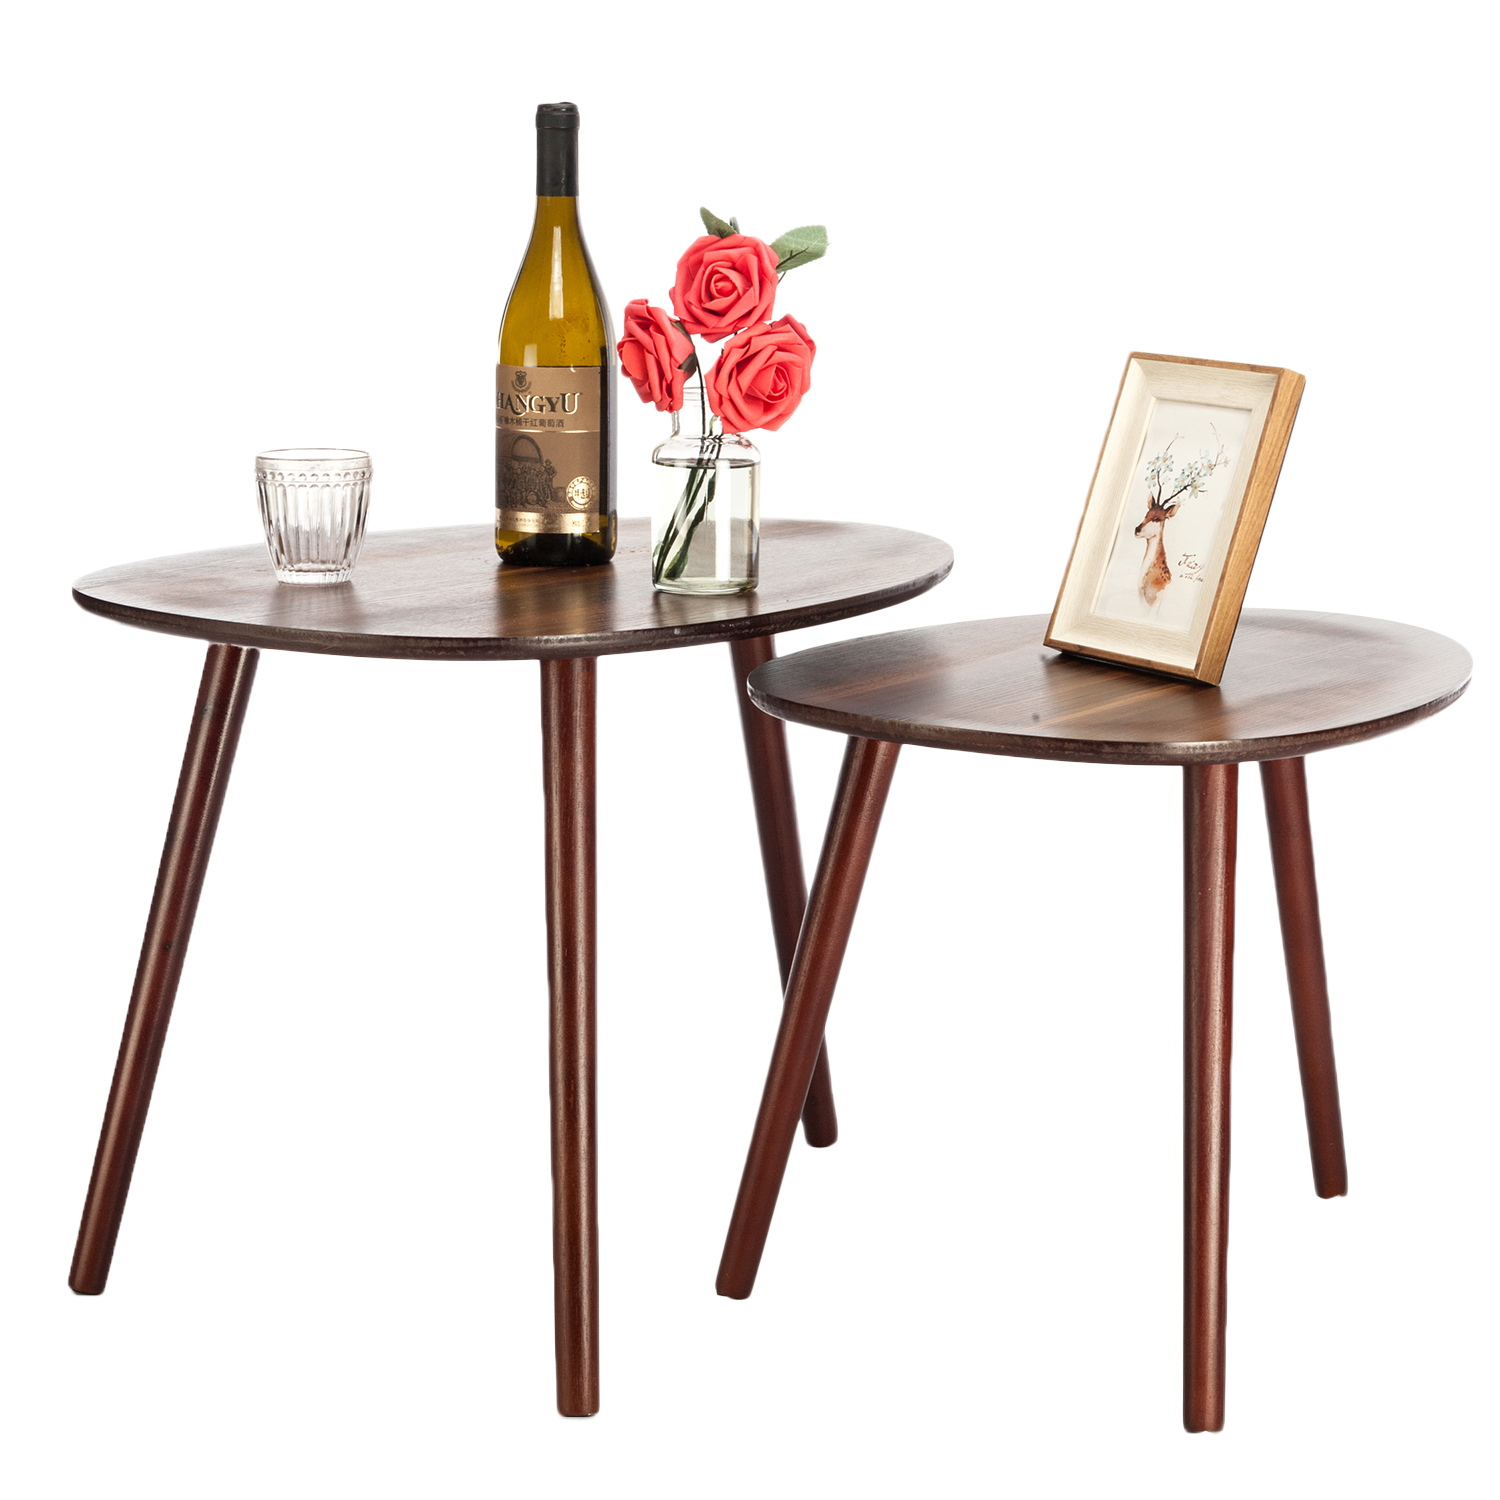 Set Of 2 Nesting Tables Stacking Coffee Side End For Living Room